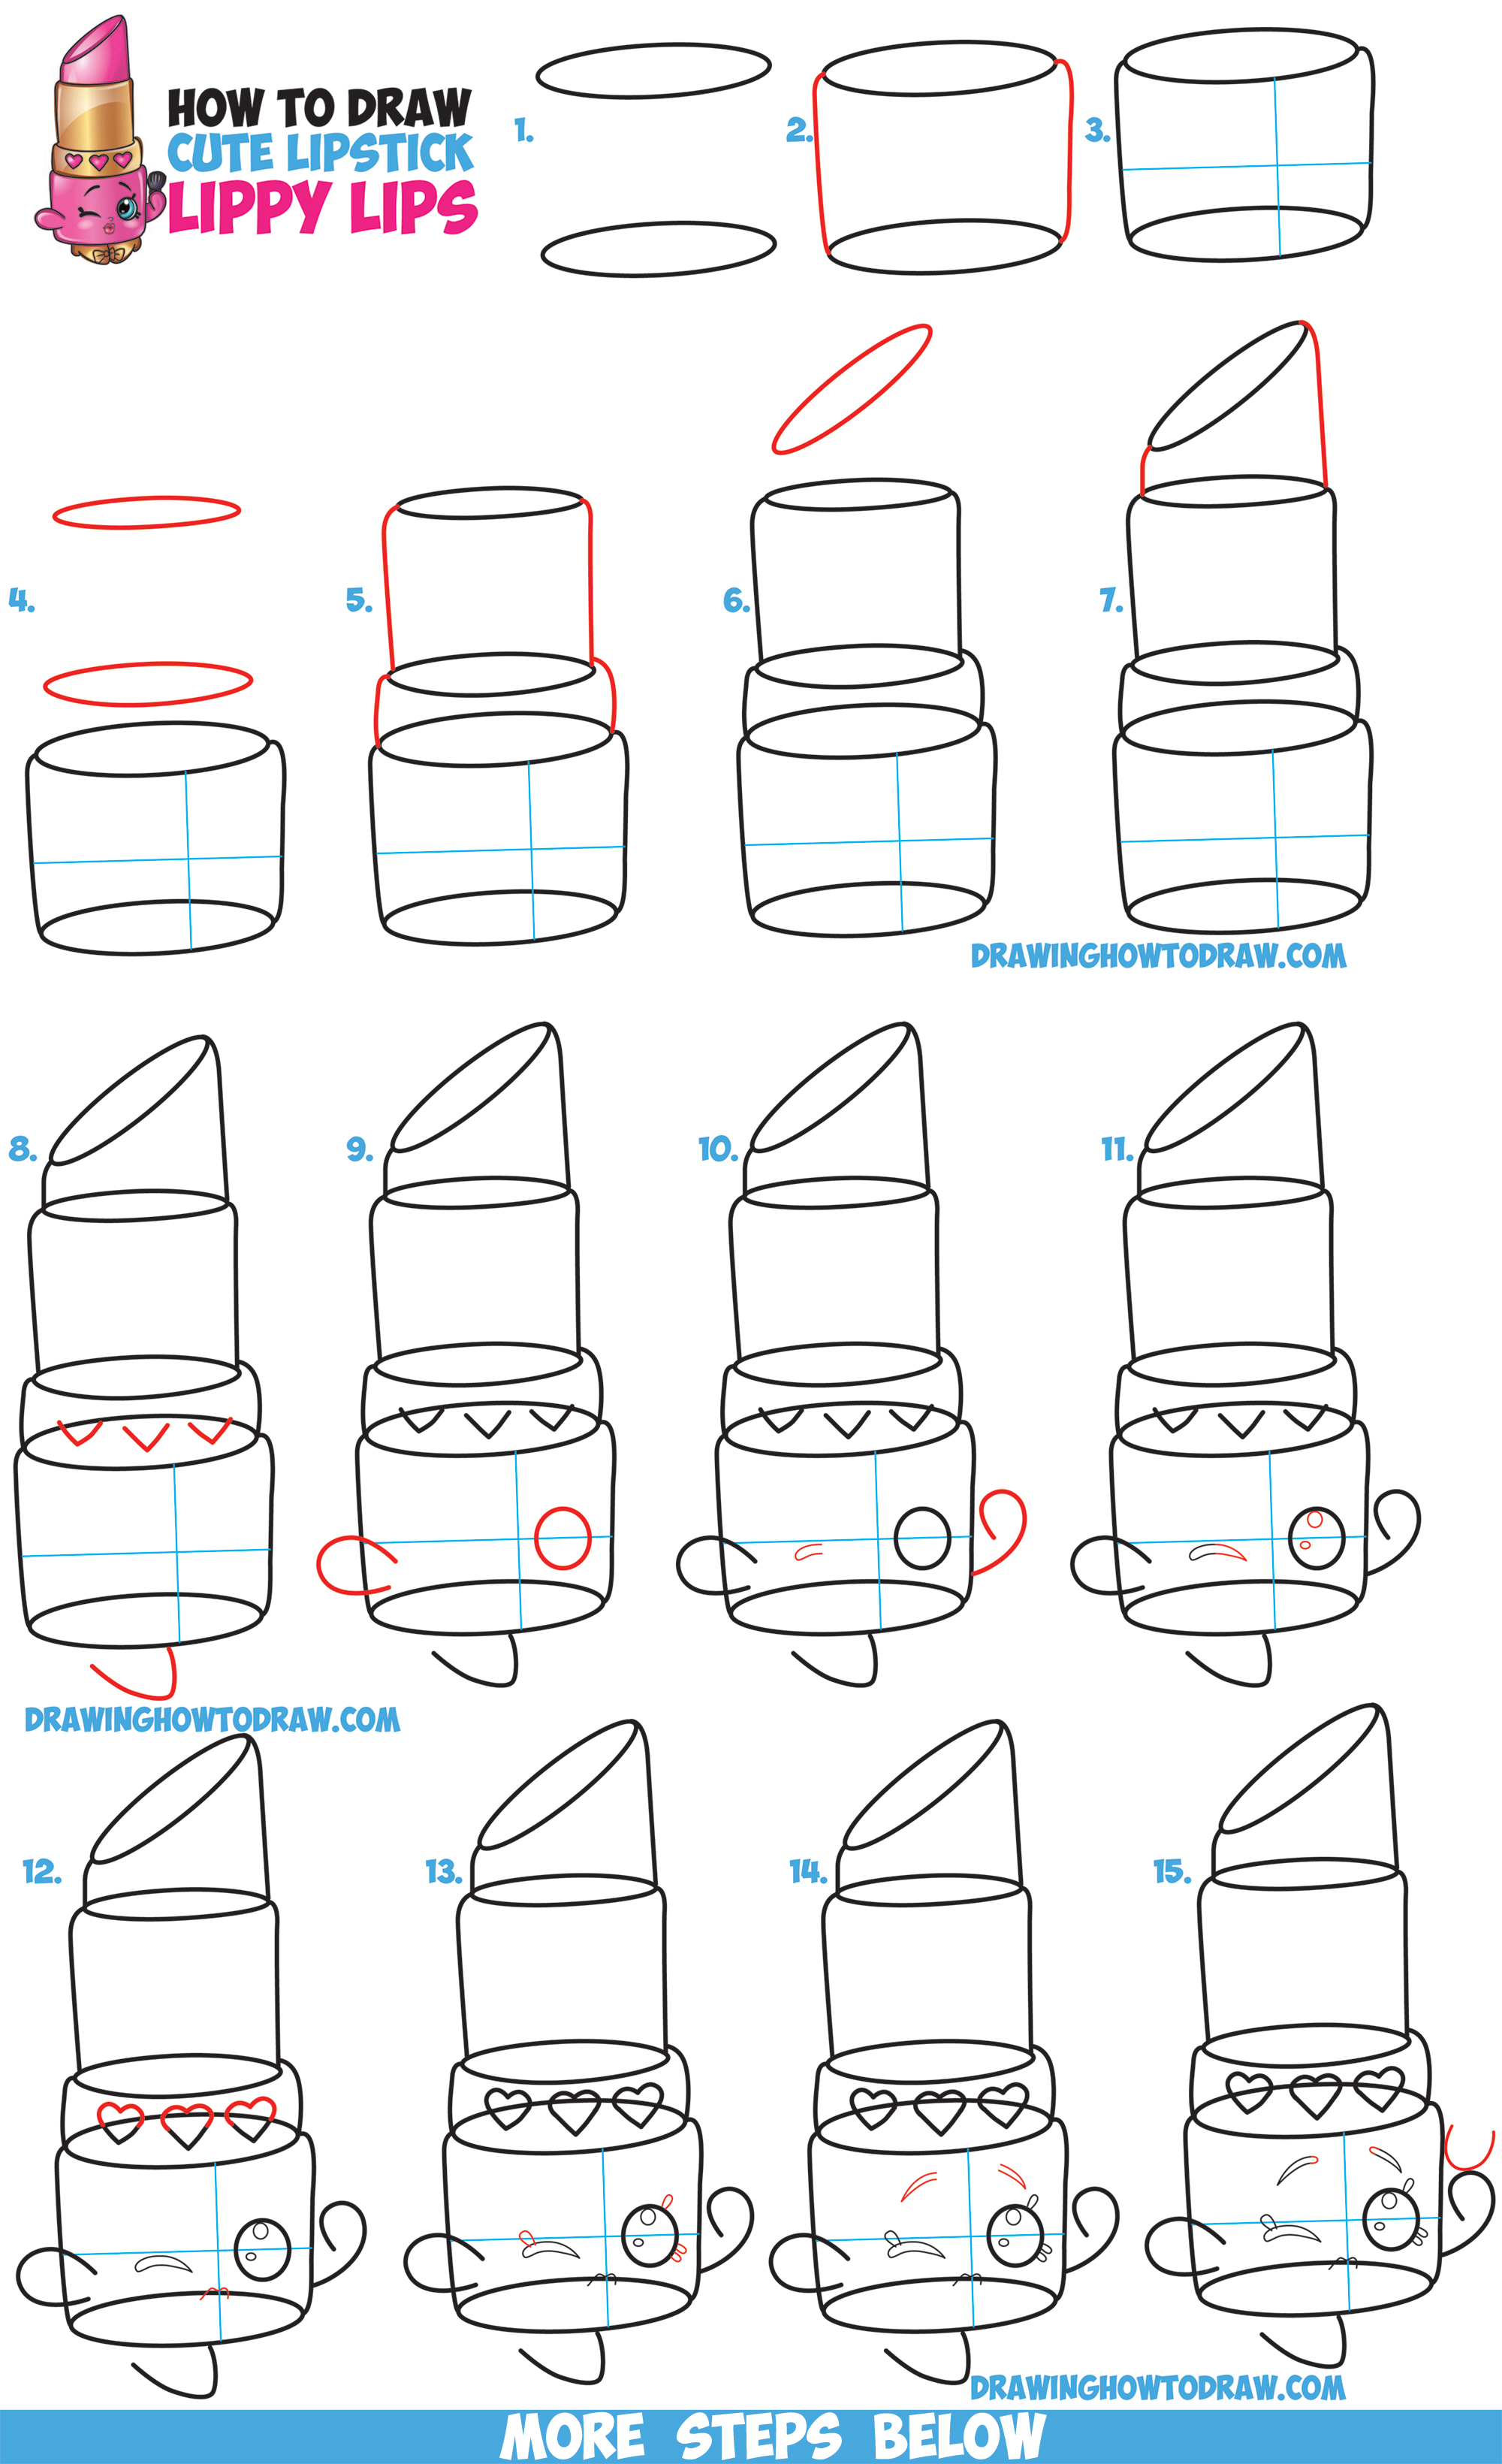 How to Draw Lippy Lips / Cute Lipstick from Shopkins ...